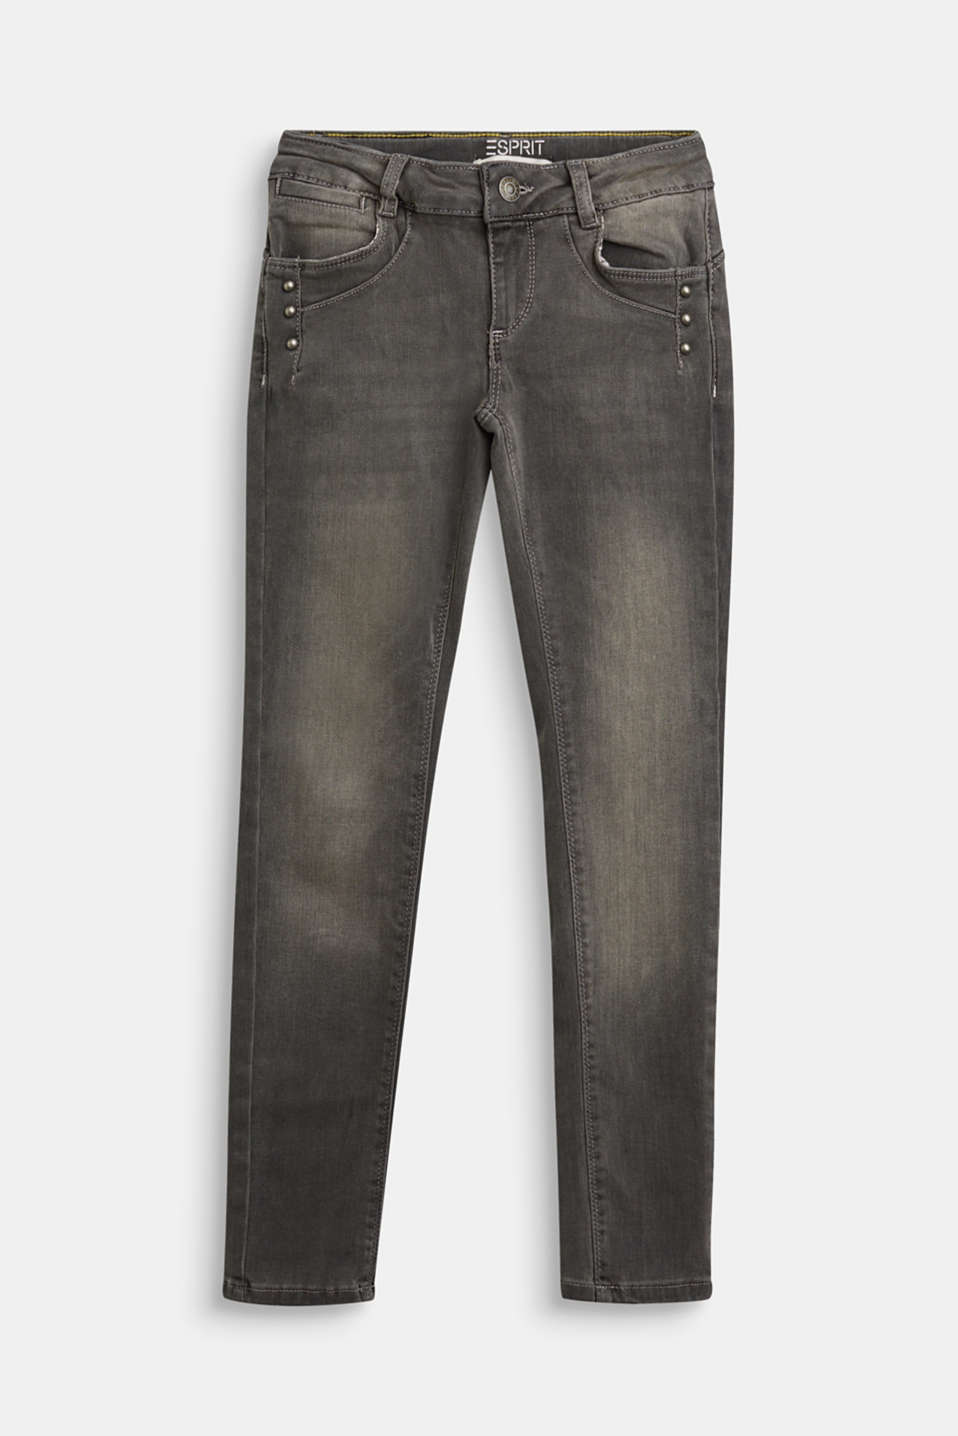 Esprit - Stretch jeans with decorative studs